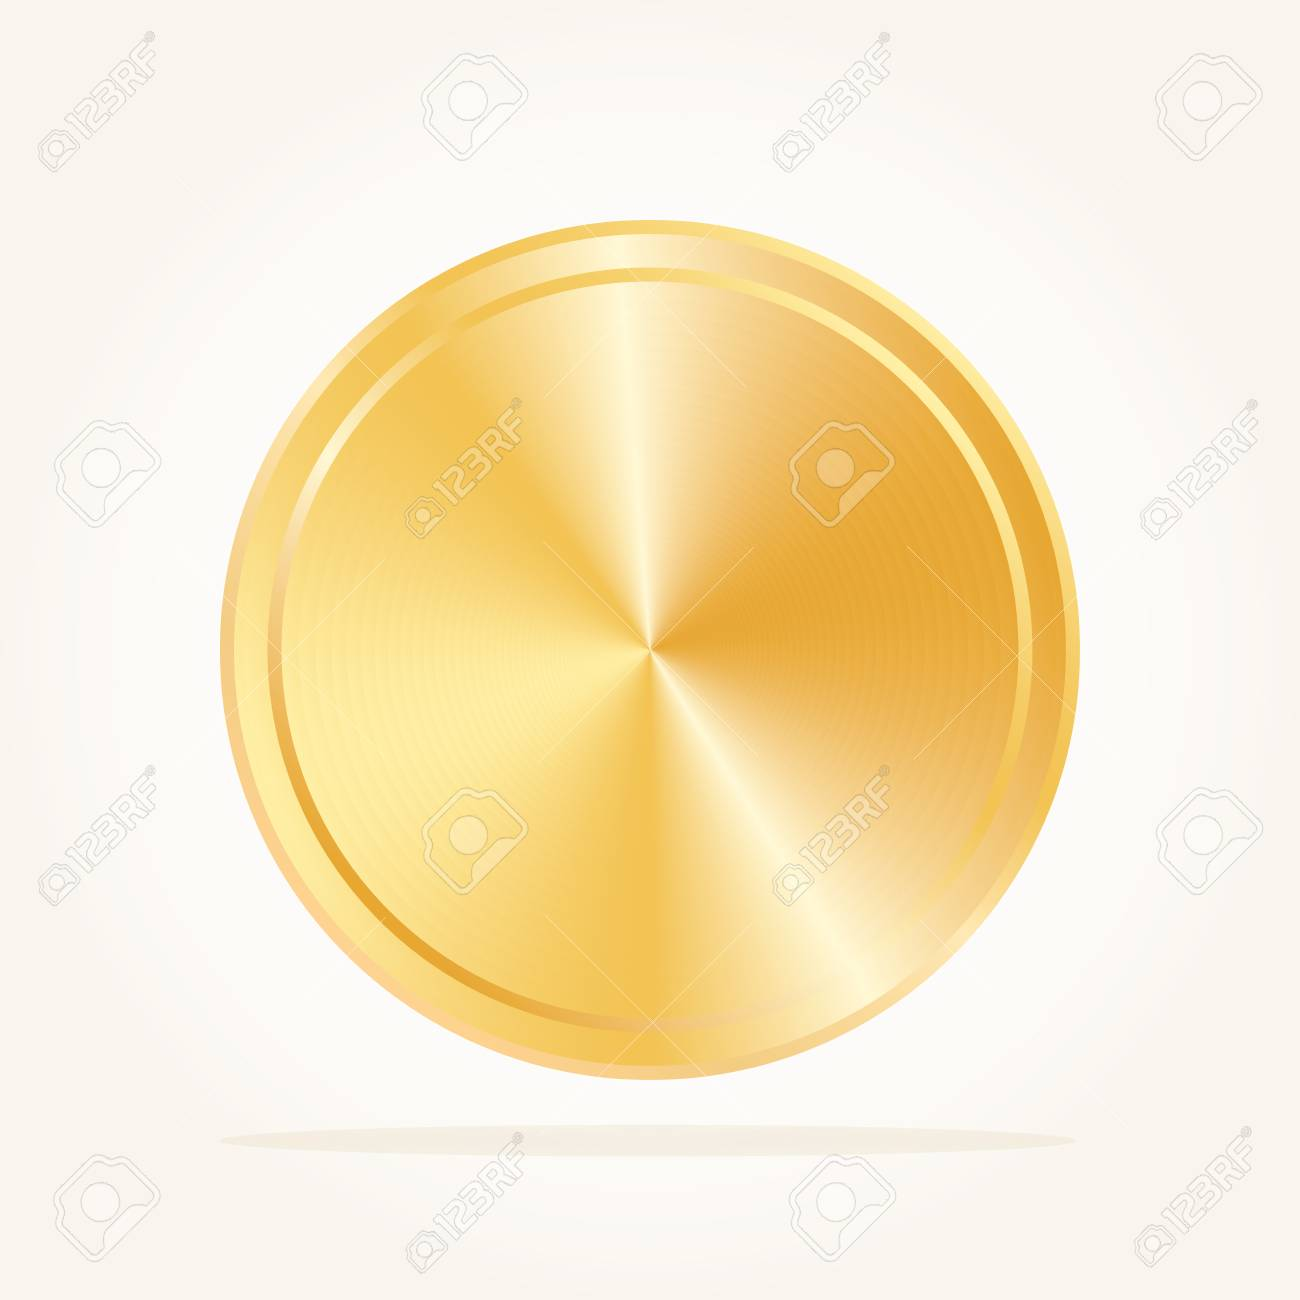 Vector Blank Gold Medal Champions Medallion Royalty Free Cliparts Vectors And Stock Illustration Image 80392883